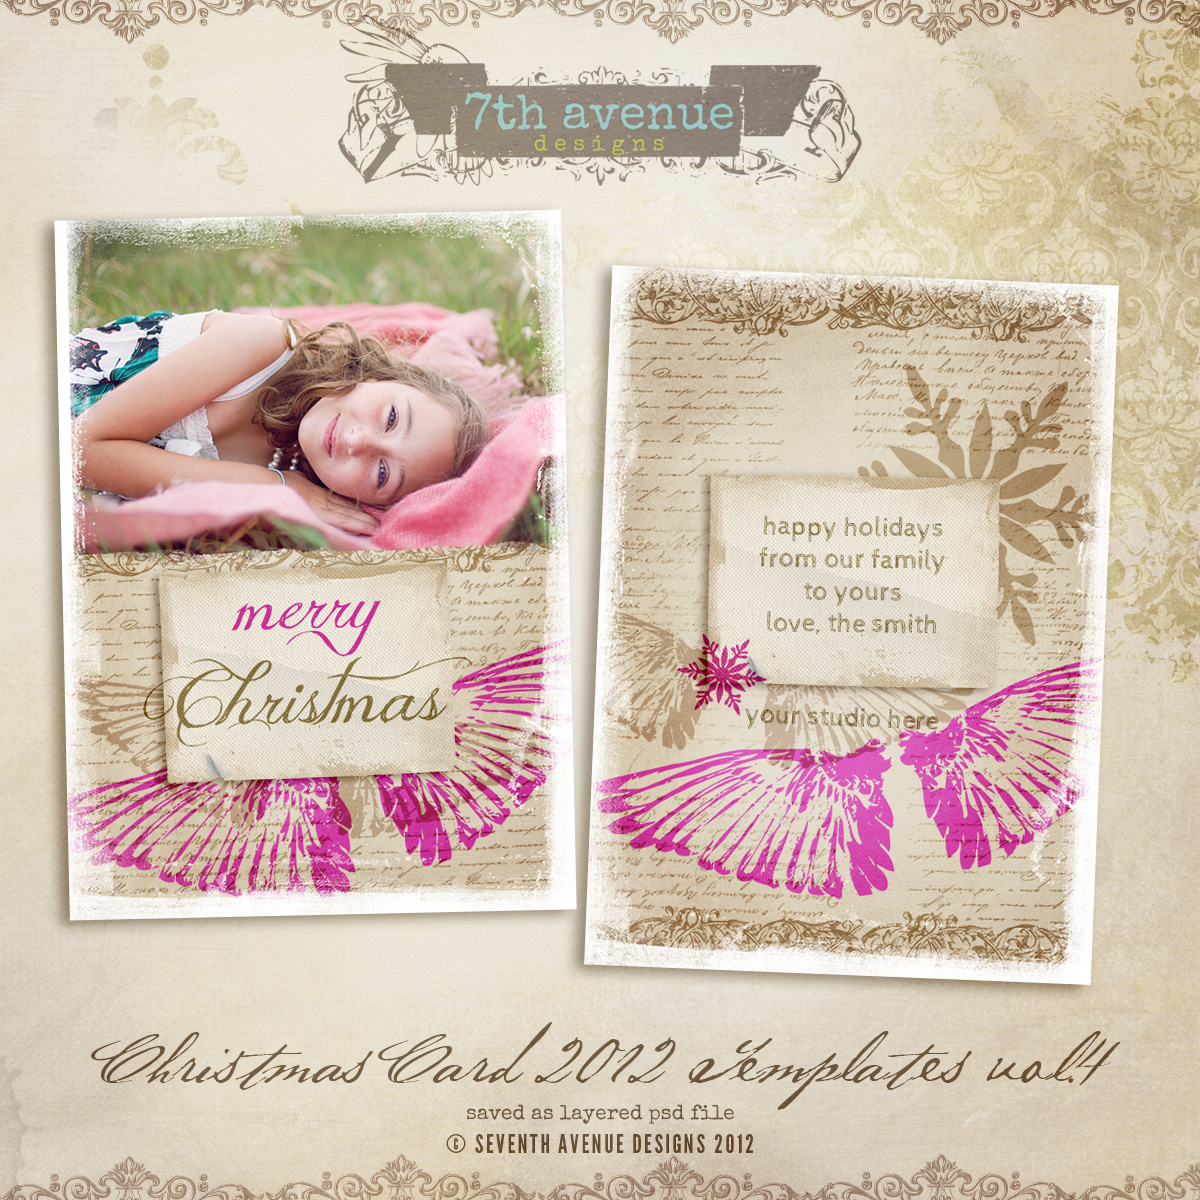 2012 Christmas Card Templates vol.4 -- 5x7 inch card template